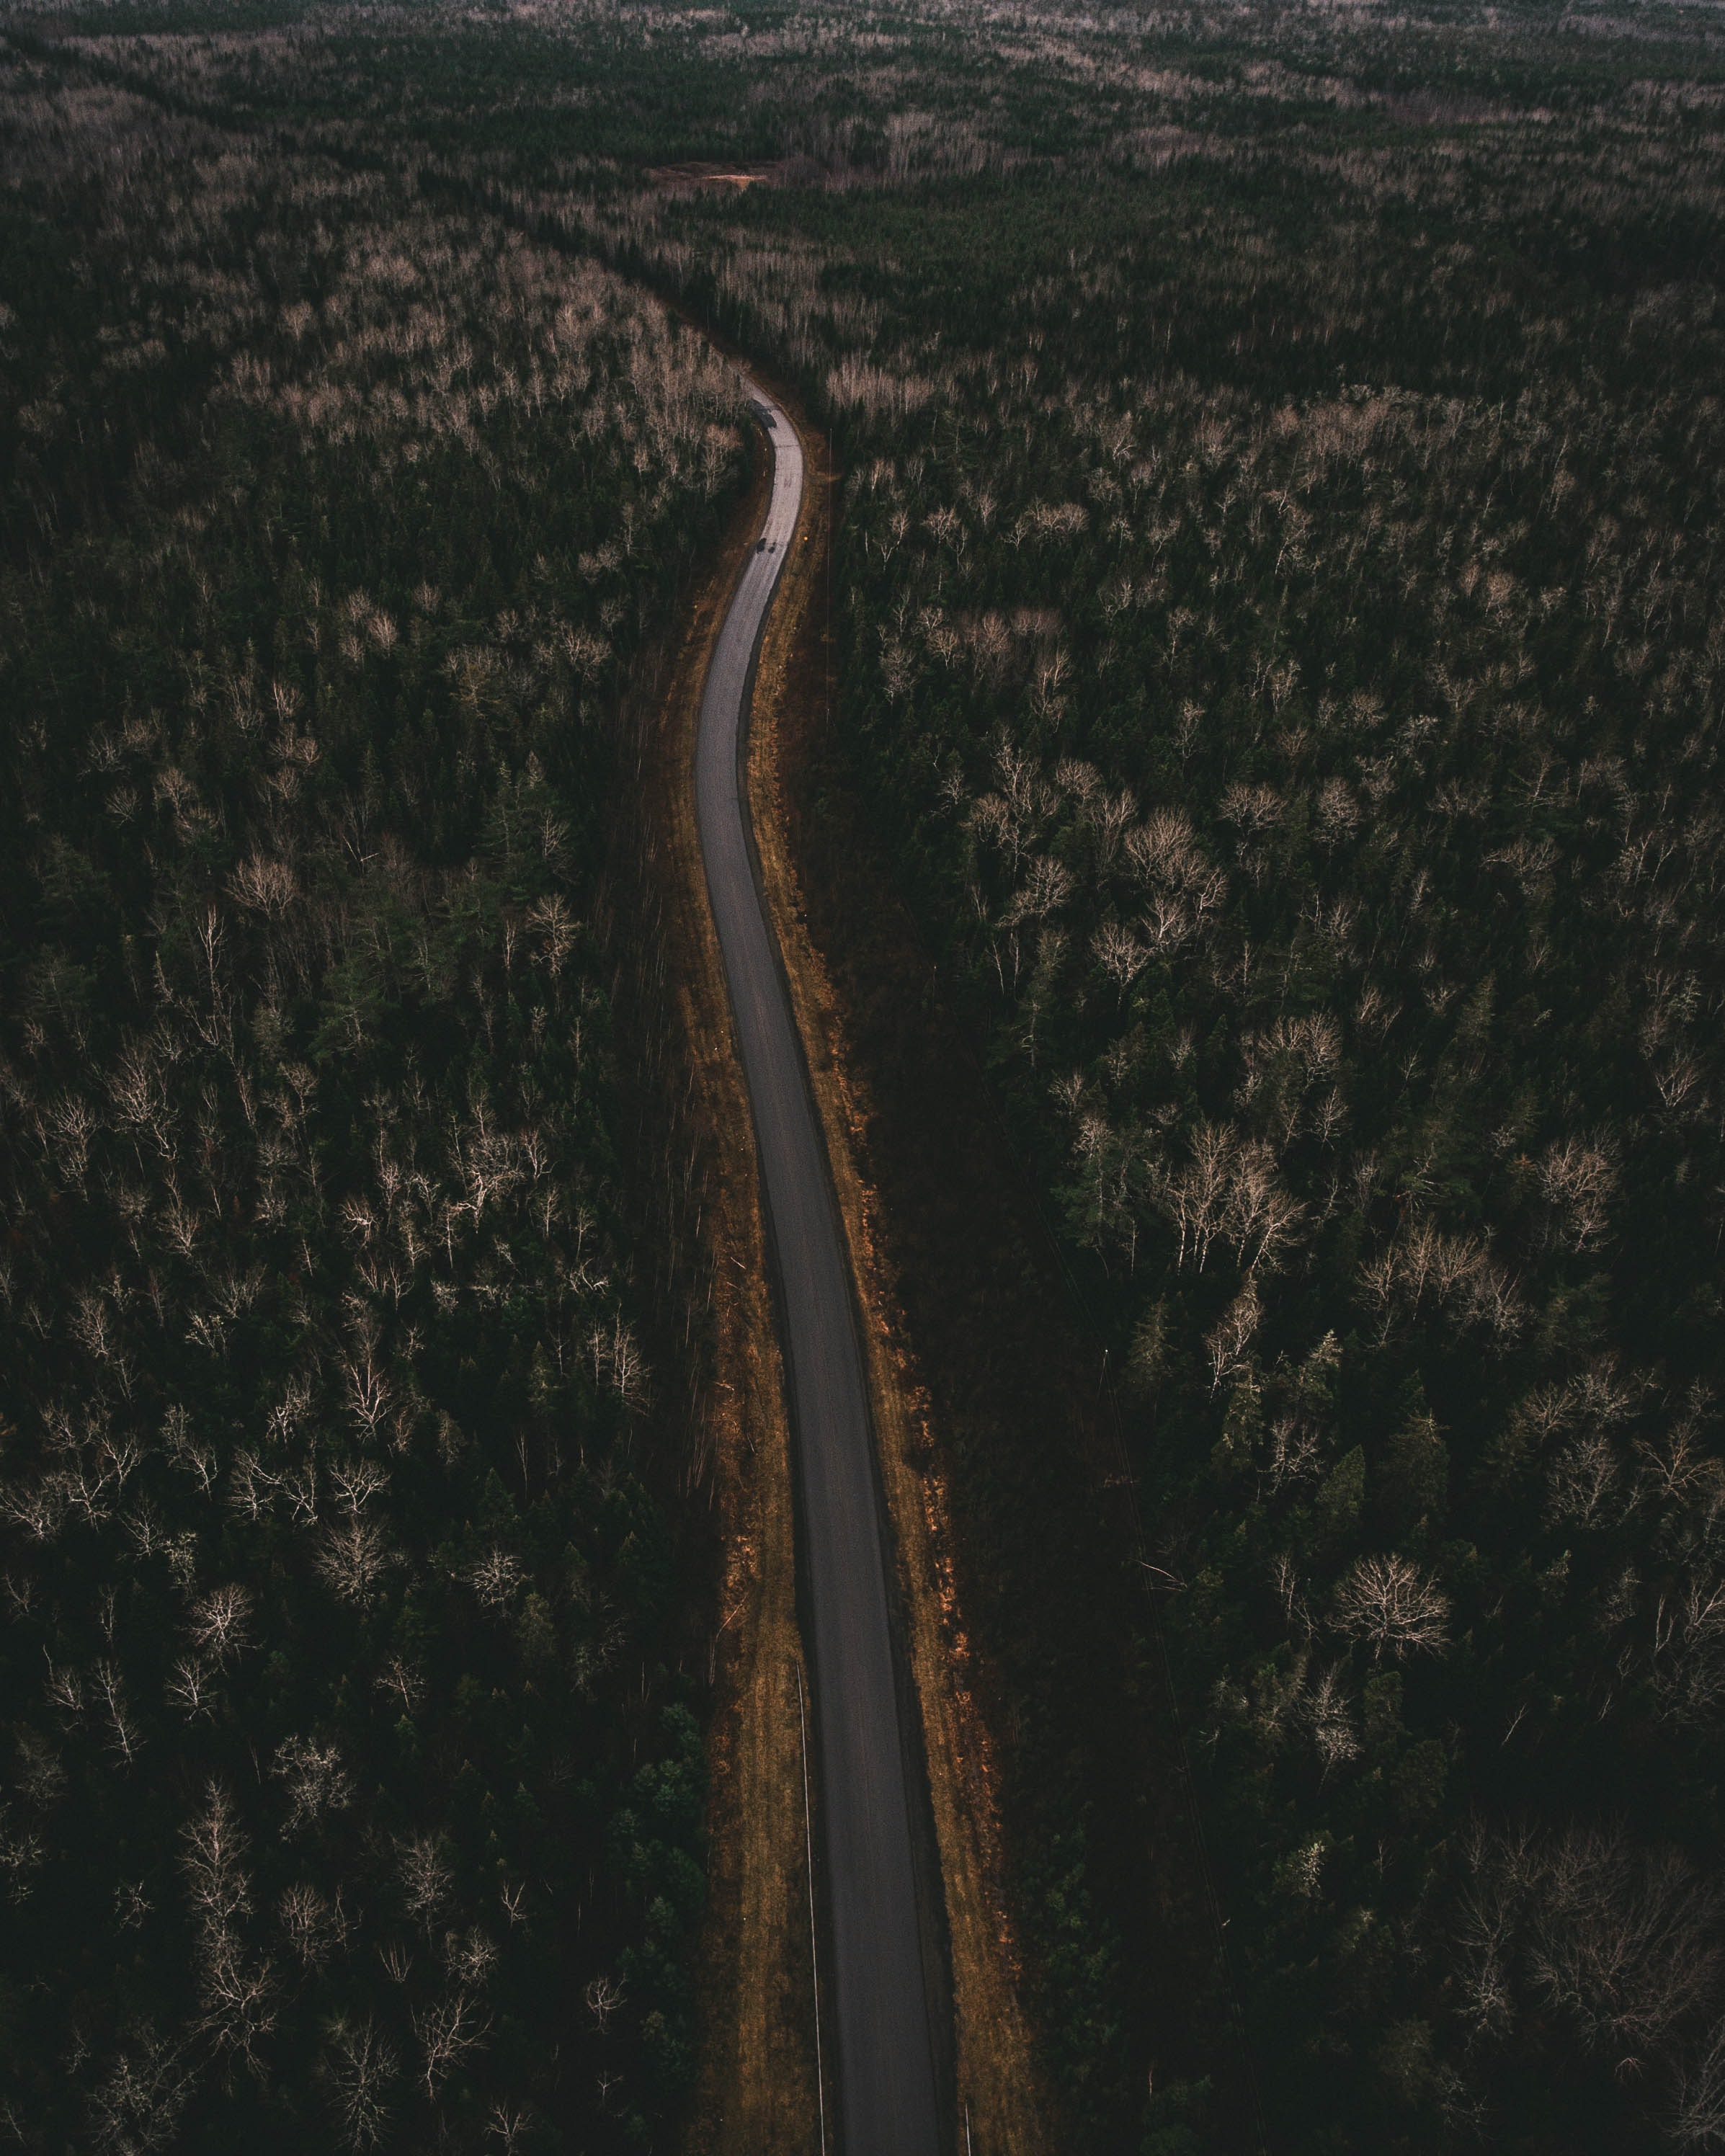 asphalt road between forests